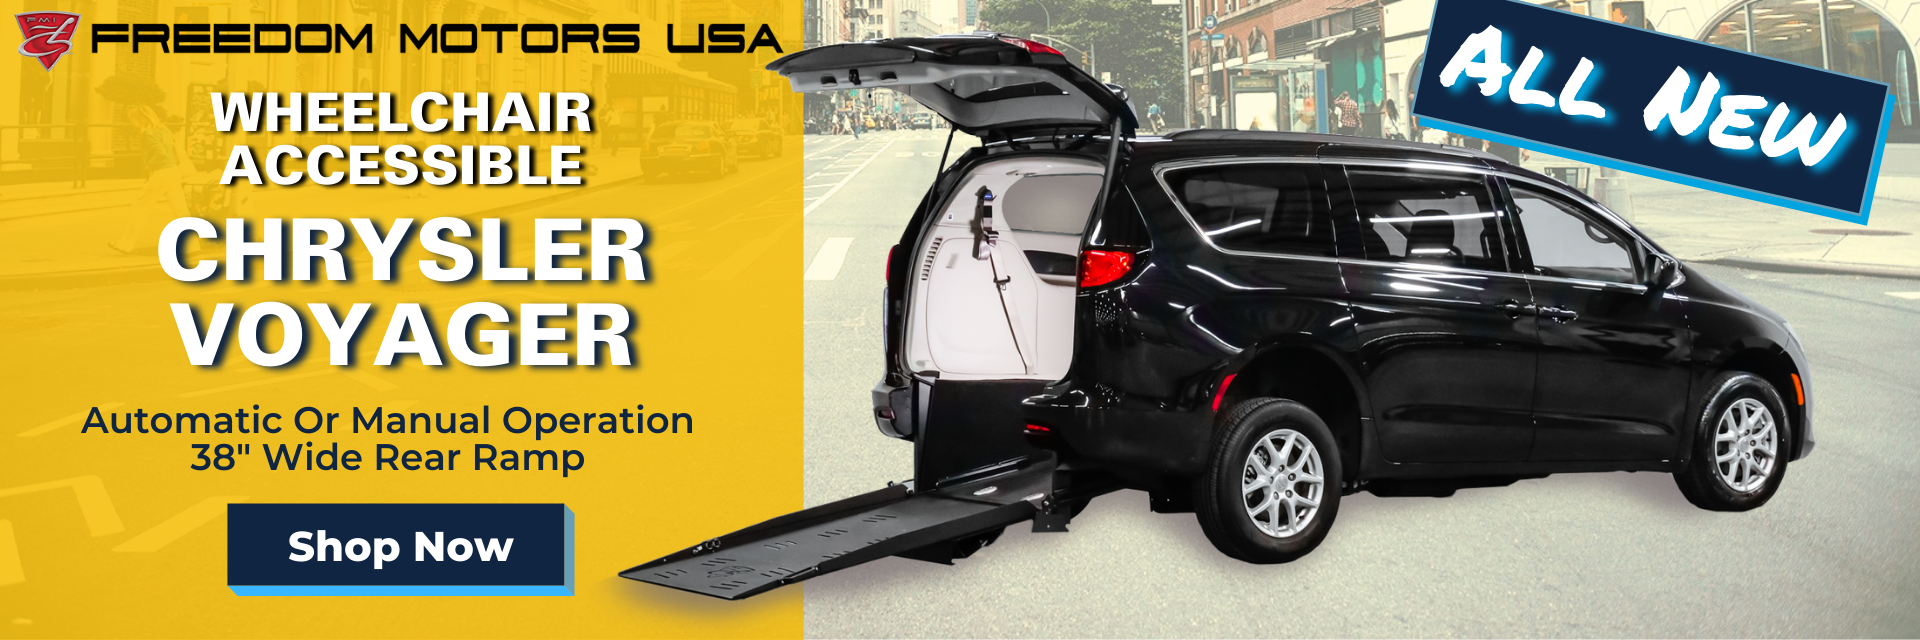 All New Chrysler Voyager Wheelchair Accessible Vehicle